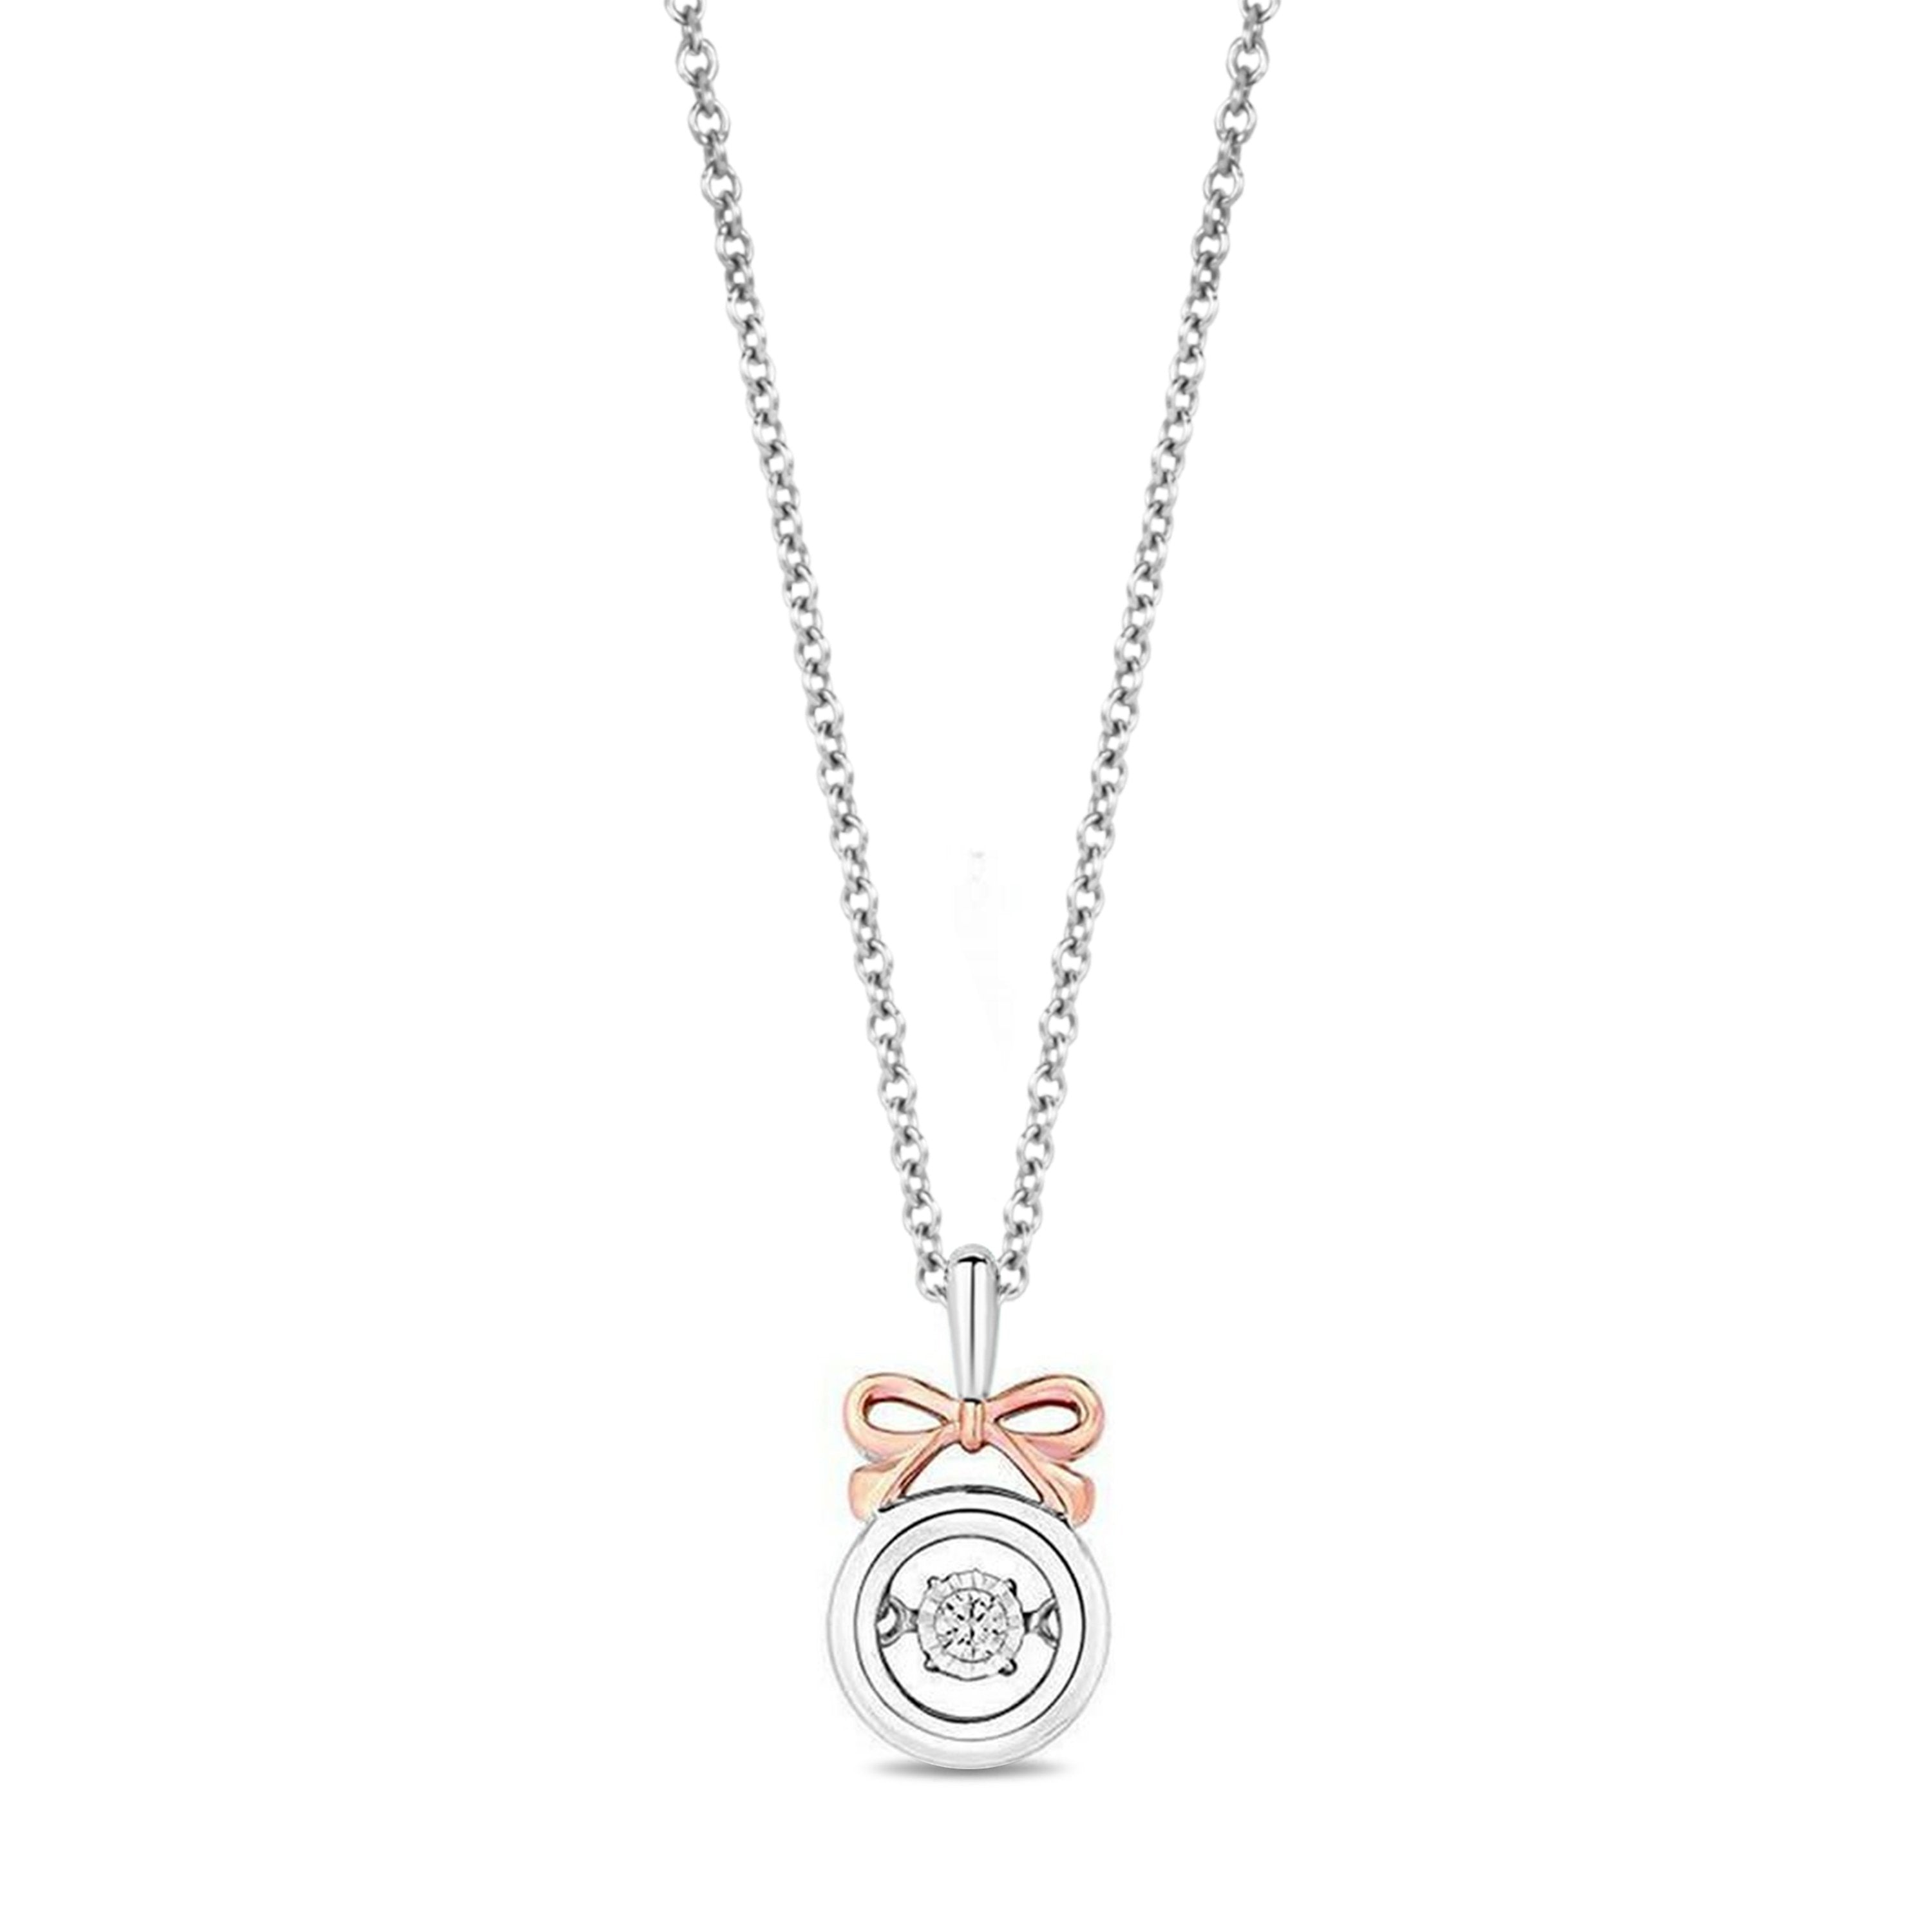 enchanted_disney-snow-white_necklace-sterling_silver_0.05CTTW_1